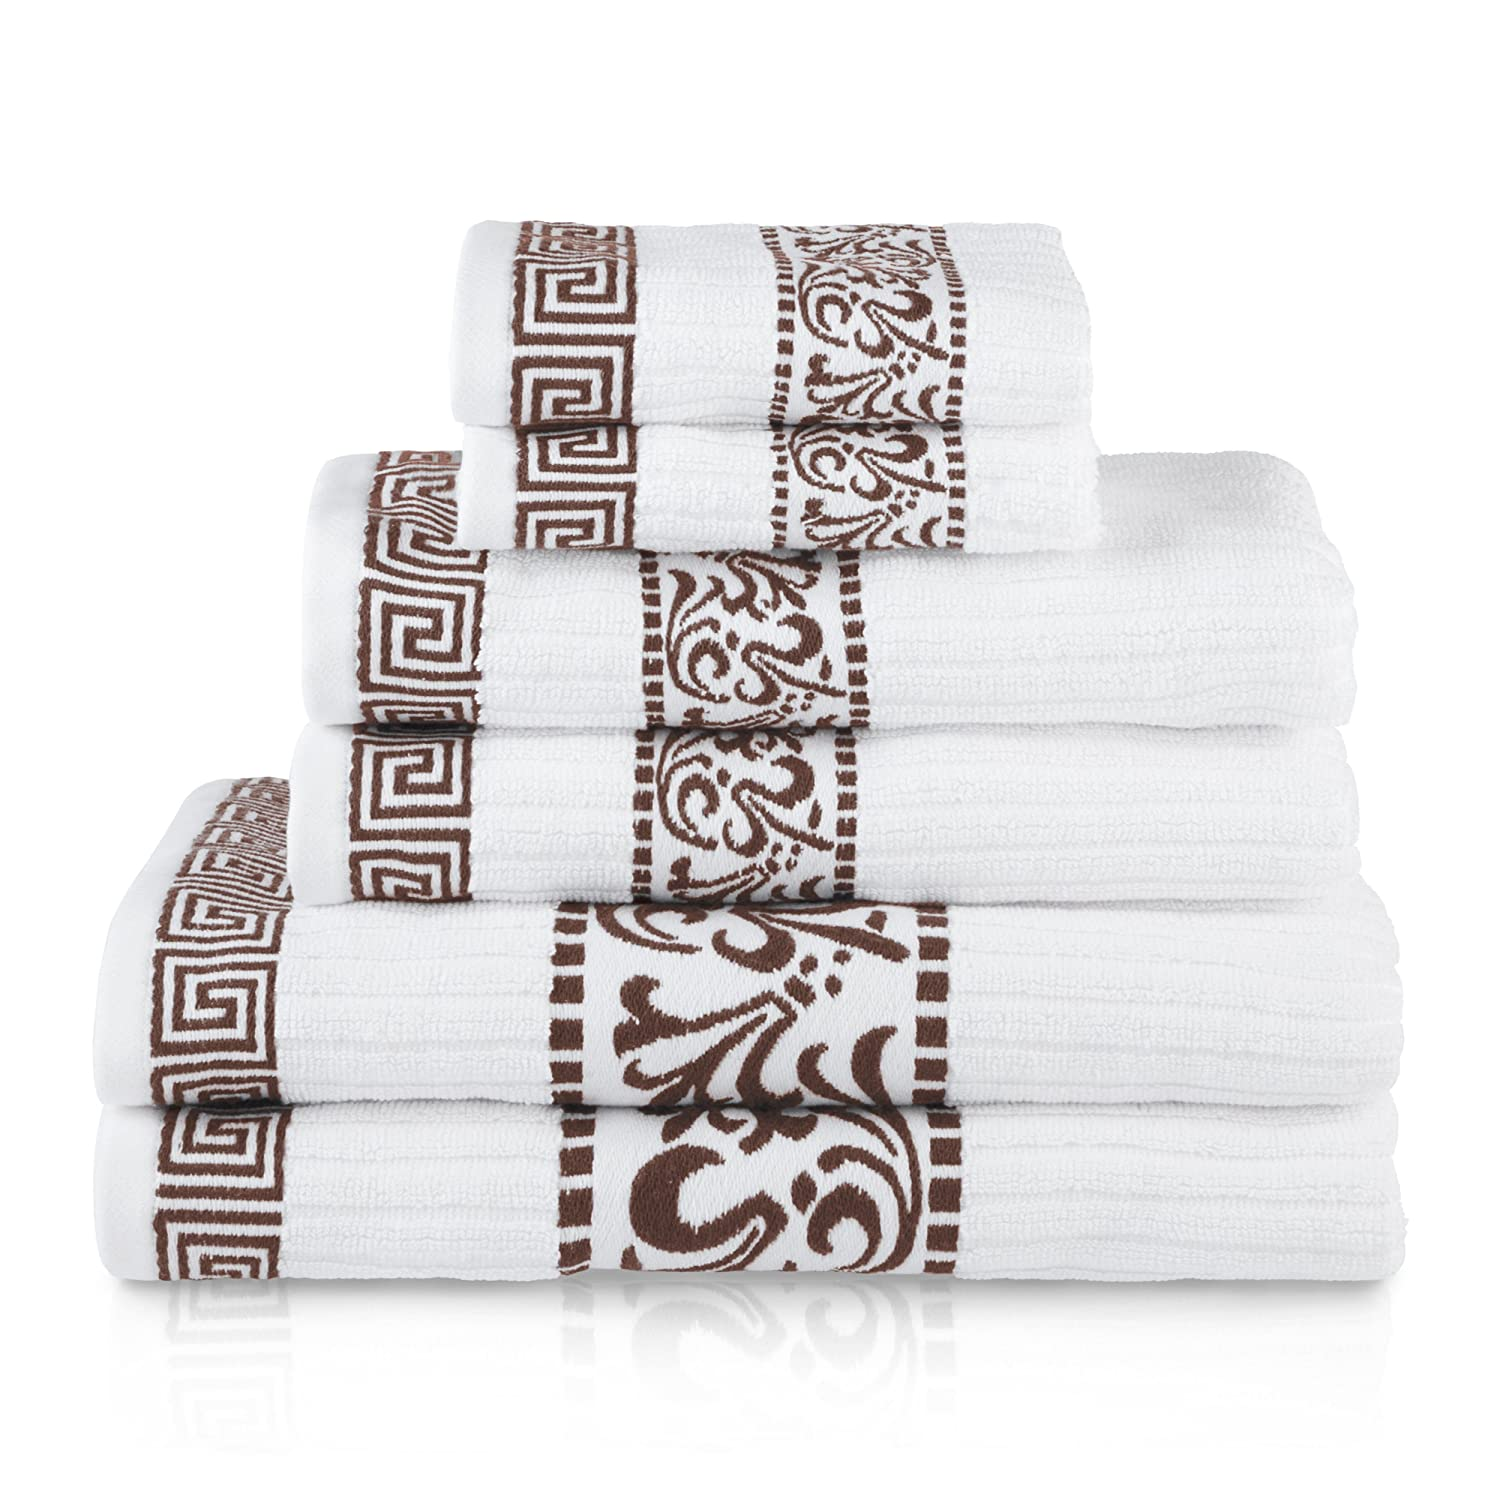 Soft Beautiful 6 Piece Towel Set Chocolate Superior Athens 100/% Cotton Extremely Absorbent